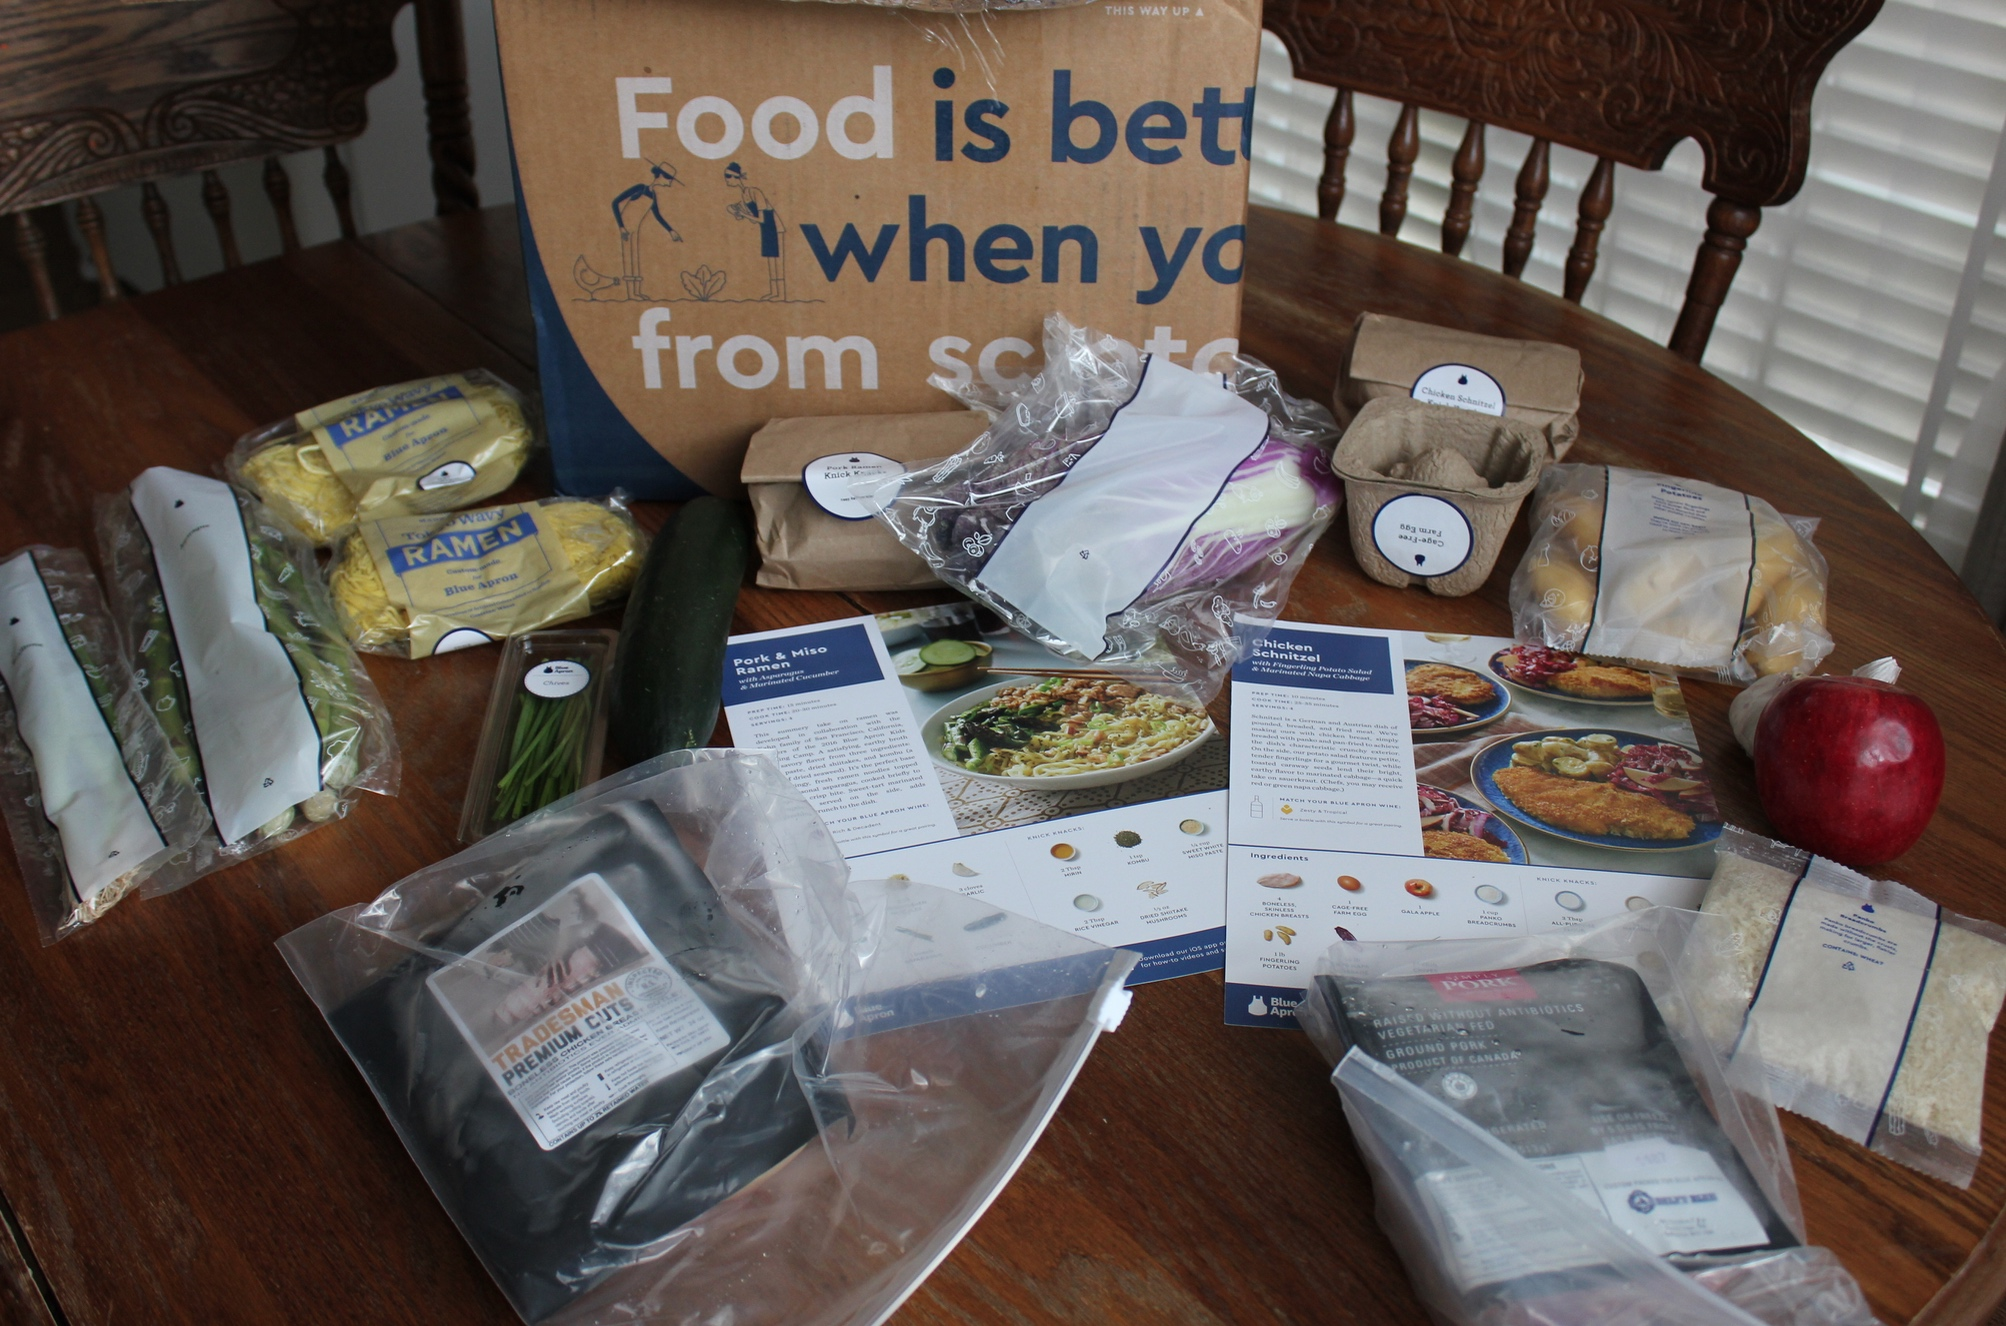 Blue apron quesadilla recipe - After My Latest Blue Apron Unboxing Many Of You Asked Me How I Think The Prices Compare To Just Shopping For The Ingredients Yourself